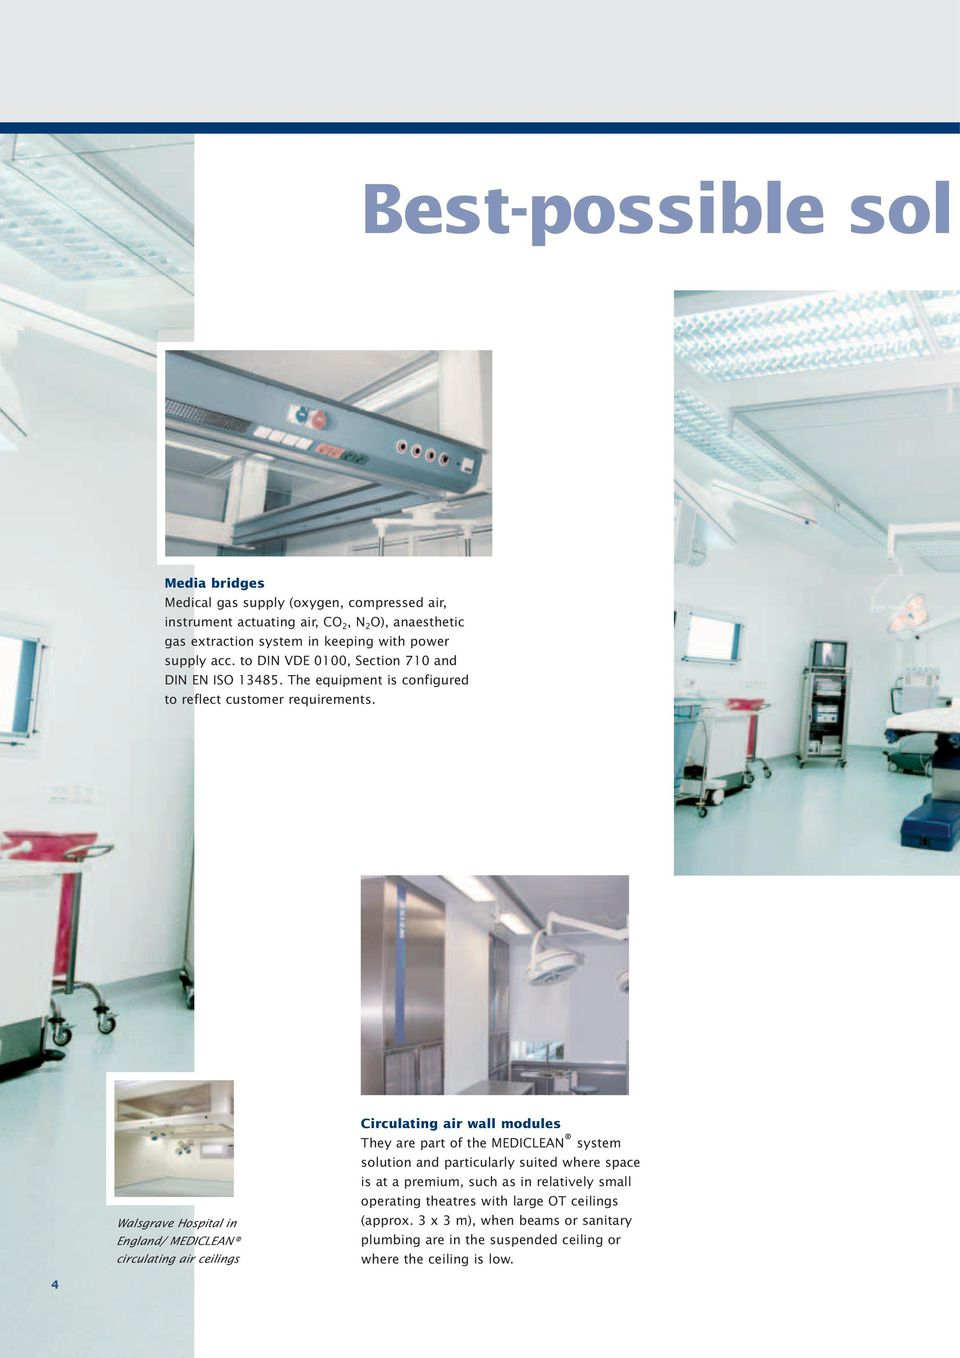 Walsgrave Hospital in England/ MEDICLEAN circulating air ceilings Circulating air wall modules They are part of the MEDICLEAN system solution and particularly suited